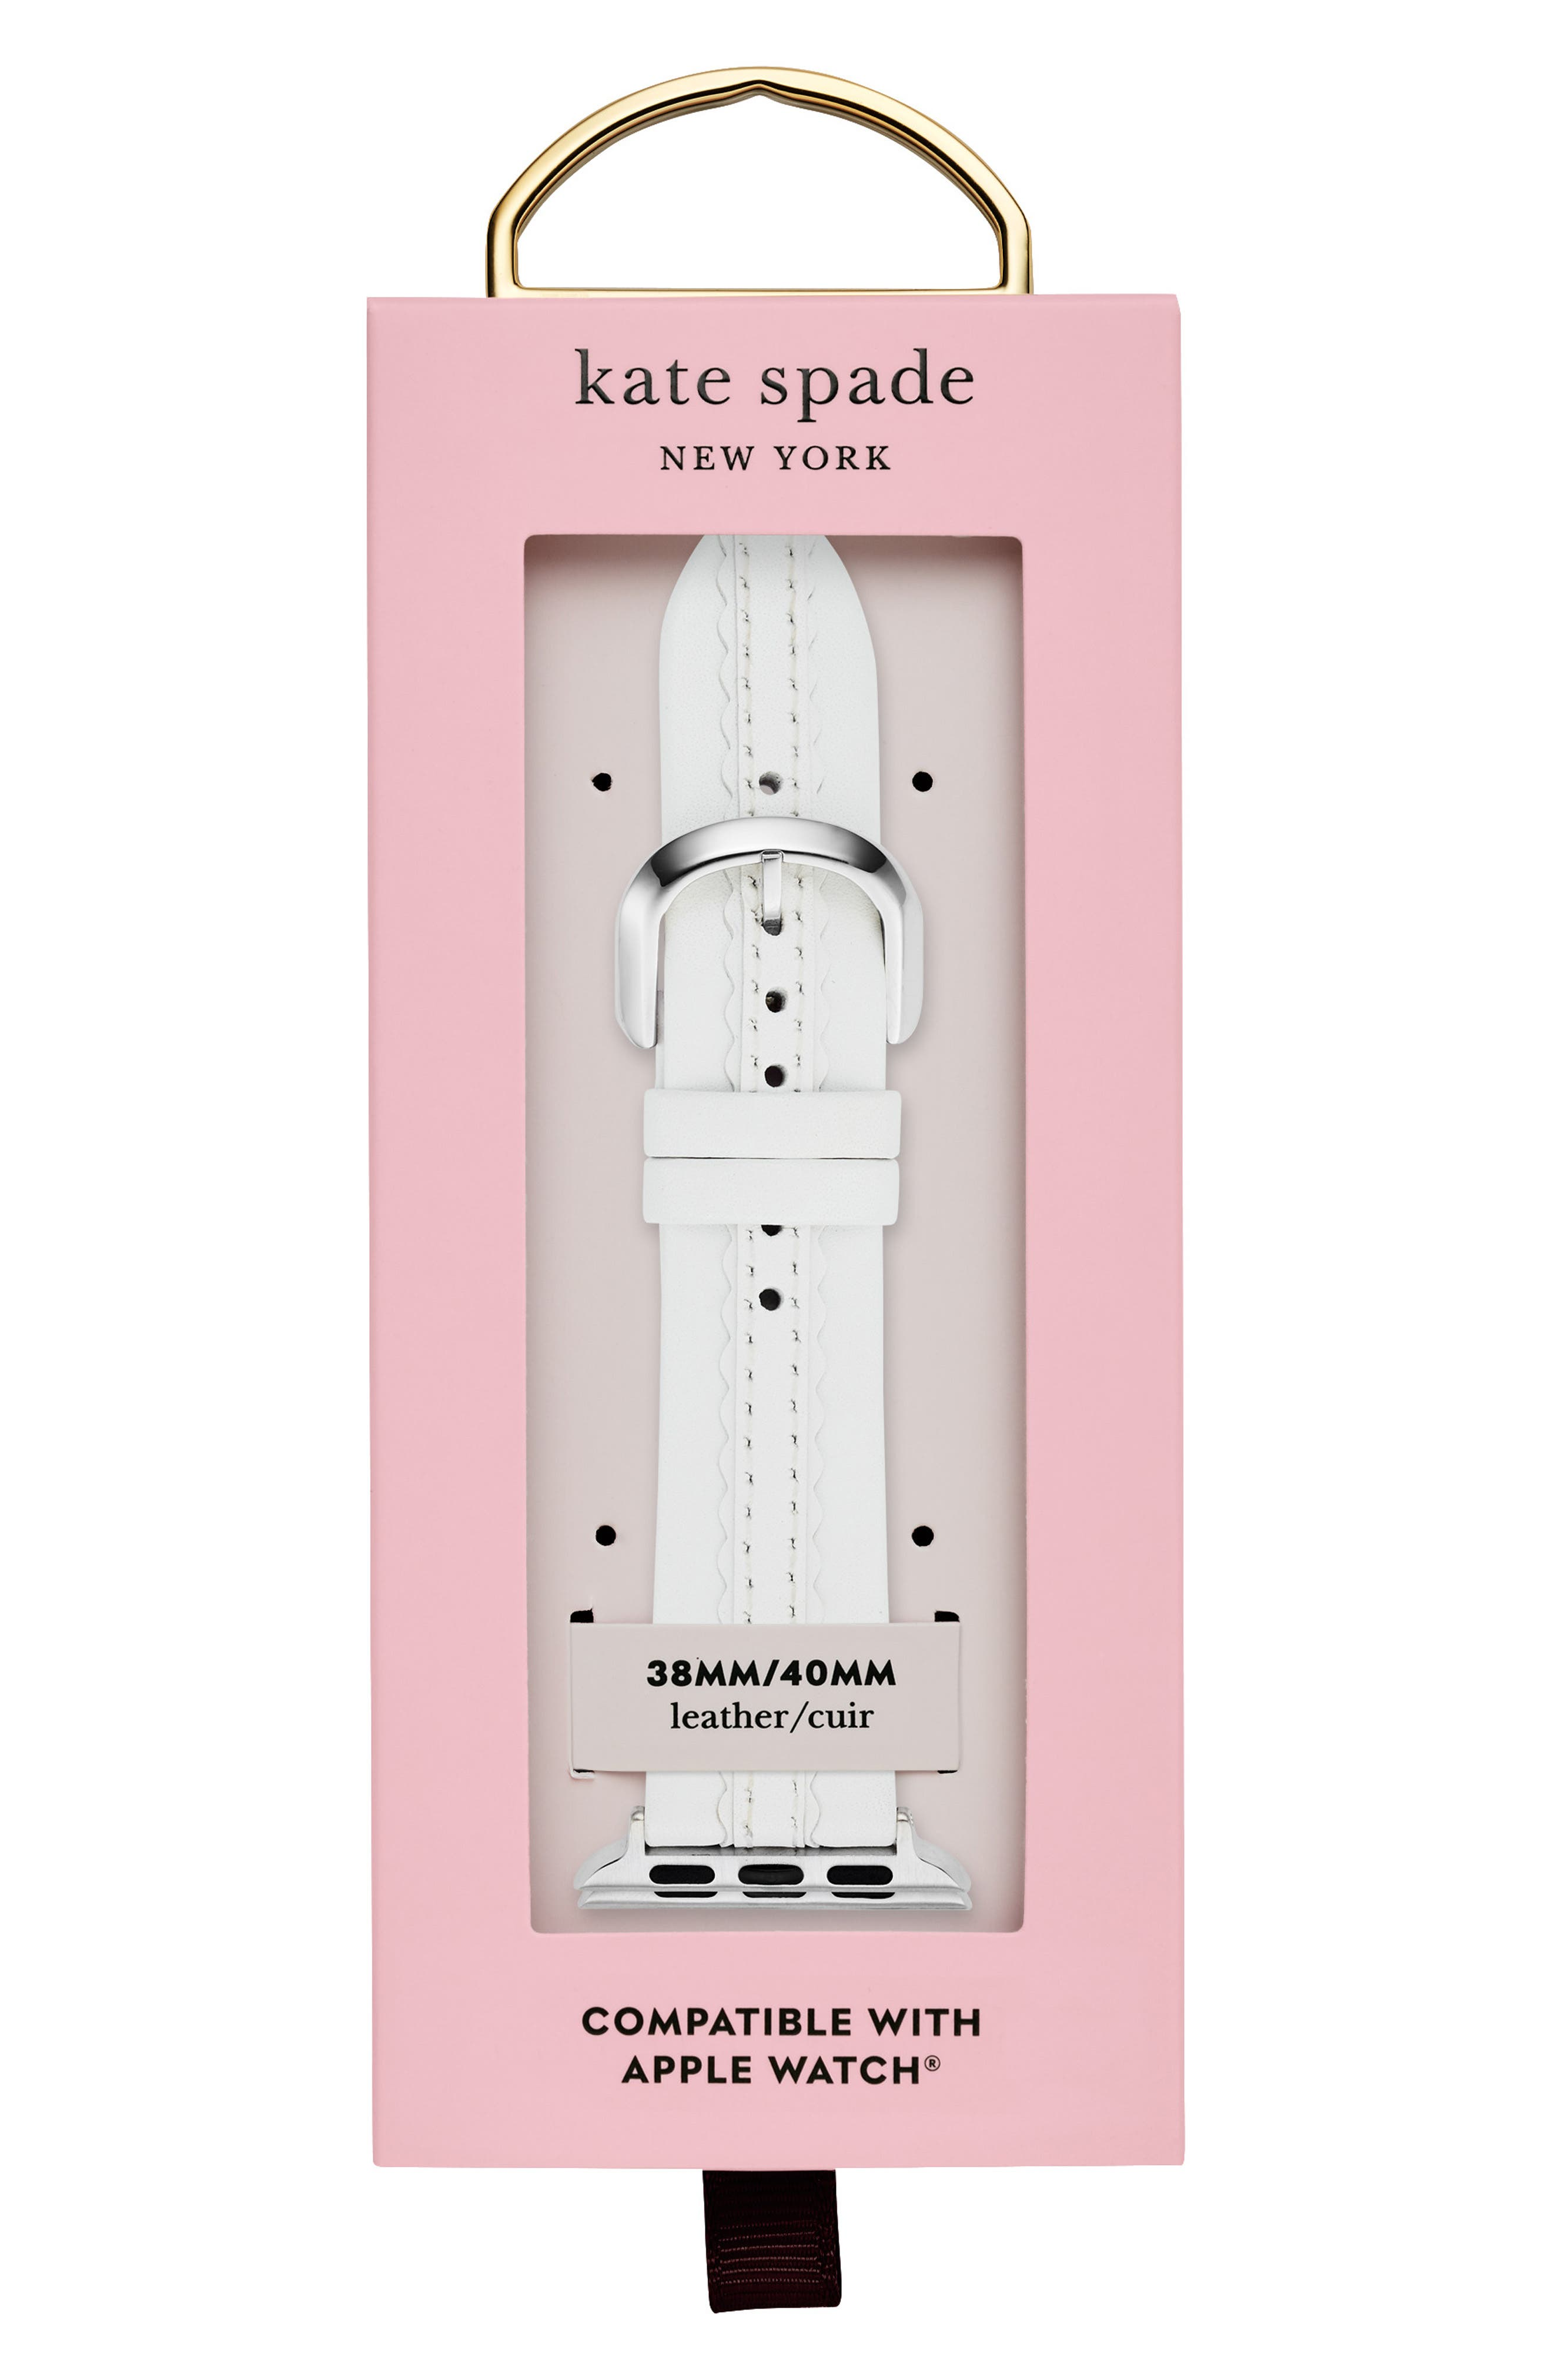 KATE SPADE NEW YORK,                             Apple Watch strap, 38mm,                             Alternate thumbnail 2, color,                             WHITE